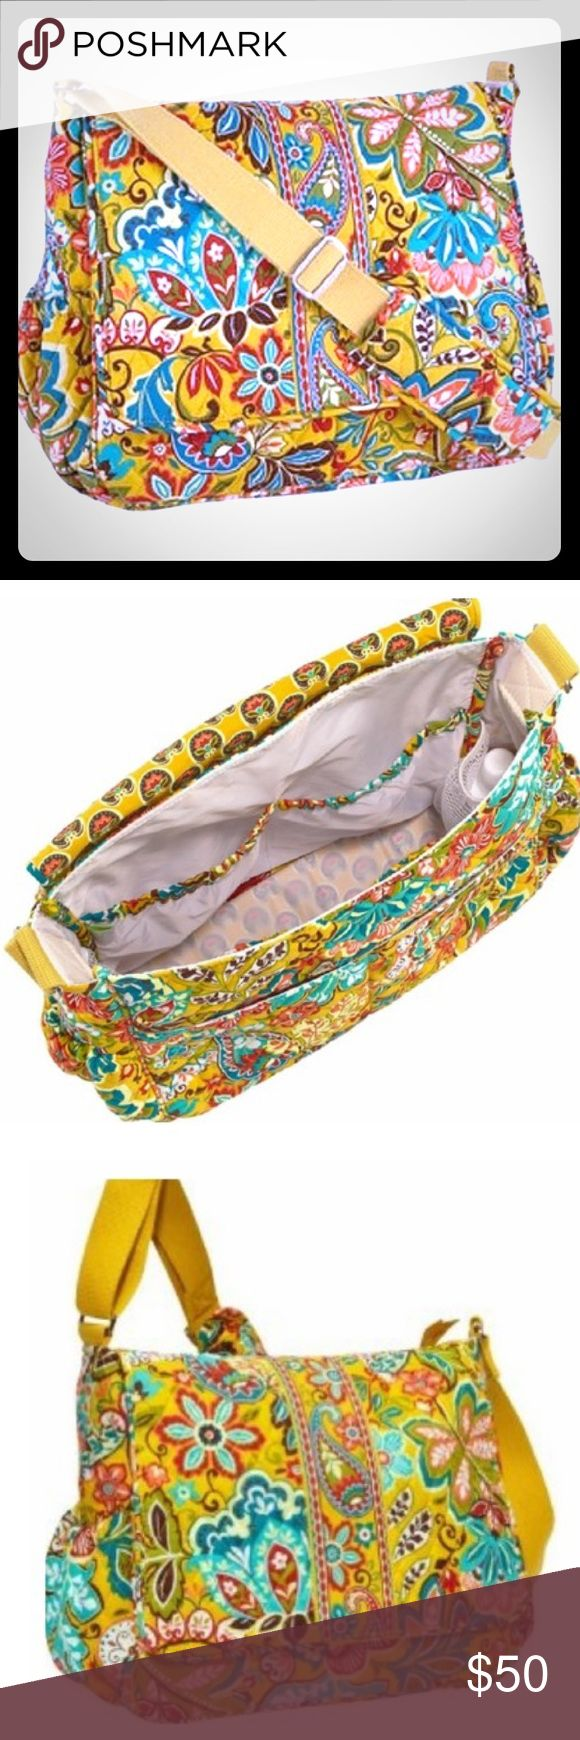 "Vera Bradley Provencal Messenger Diaper Bag W/ Pad MSRP:$118.00  🌟 30% off Bundles 🌟  Never Used or worn, has small mark on bottom (pictured)  🌸Outside🌸  • Adjustable Shoulder Strap  • Front Flap is magnetic  • Back Zipper Pocket holds Changing Pad  • 2 side Pockets   🌸 Inside 🌸  • Lined with Taffeta  • 4 Slip Pockets • 2 Mesh Elastic Pockets  🌸 Measurements 🌸  • Bag: 13.5""W x 12"" H x 5.5"" D  • Adjustable Shoulder Strap: 52""  • Changing Pad: 24"" x 18""  Bundles and offers Welcome…"